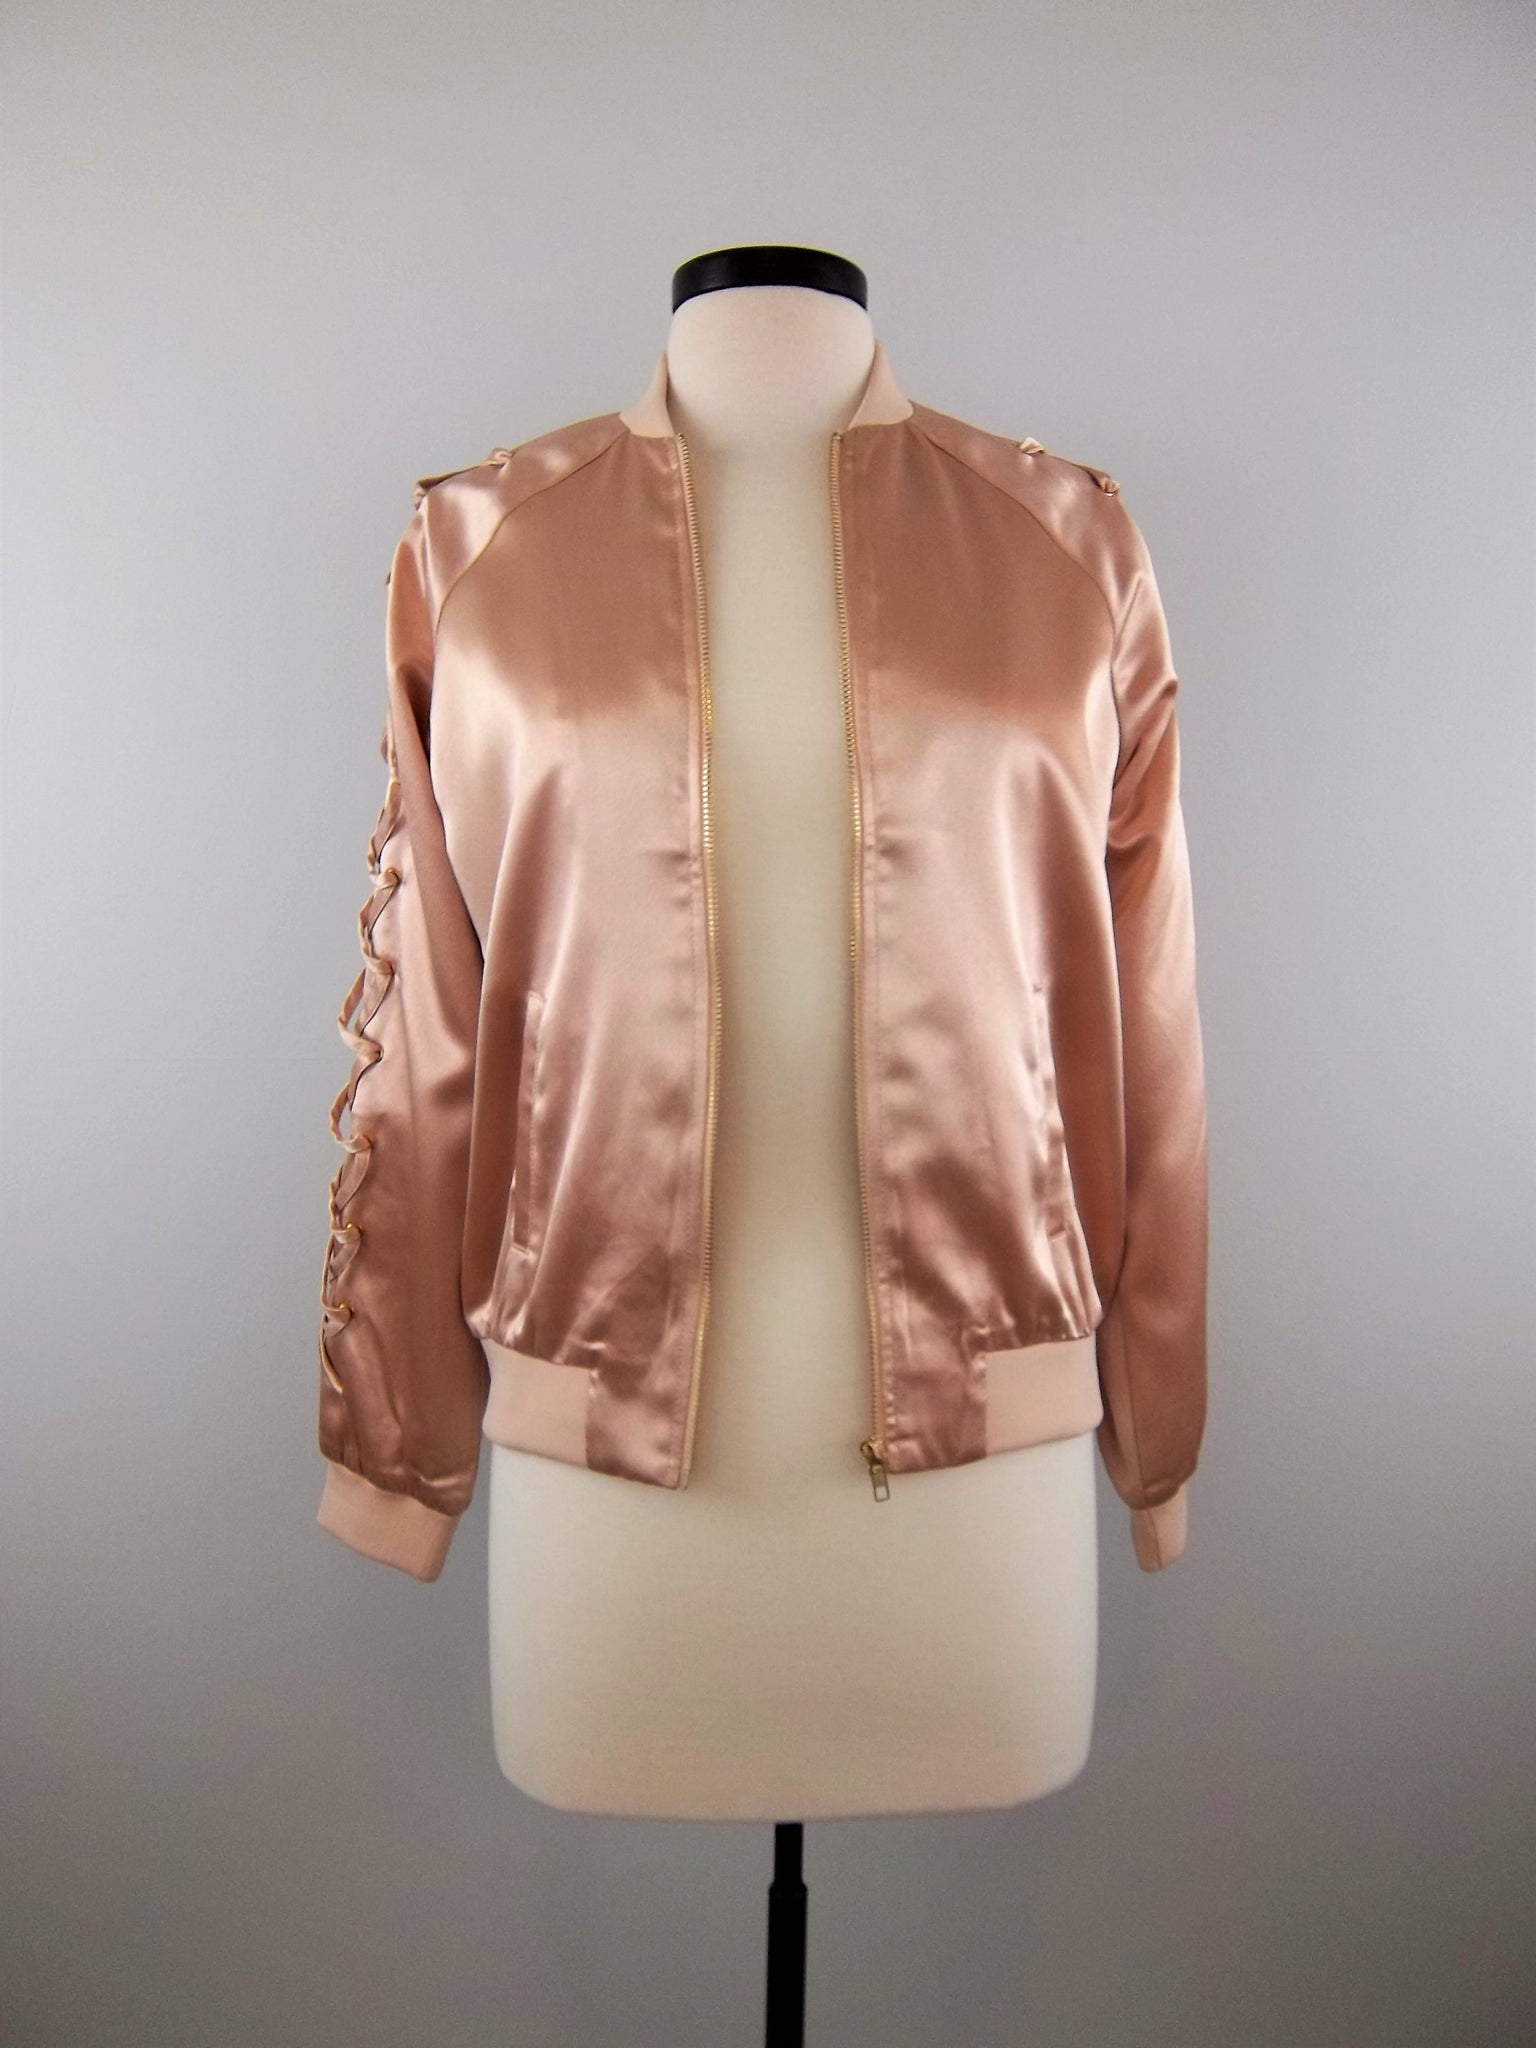 Waiting On This Moment Satin Bomber Jacket